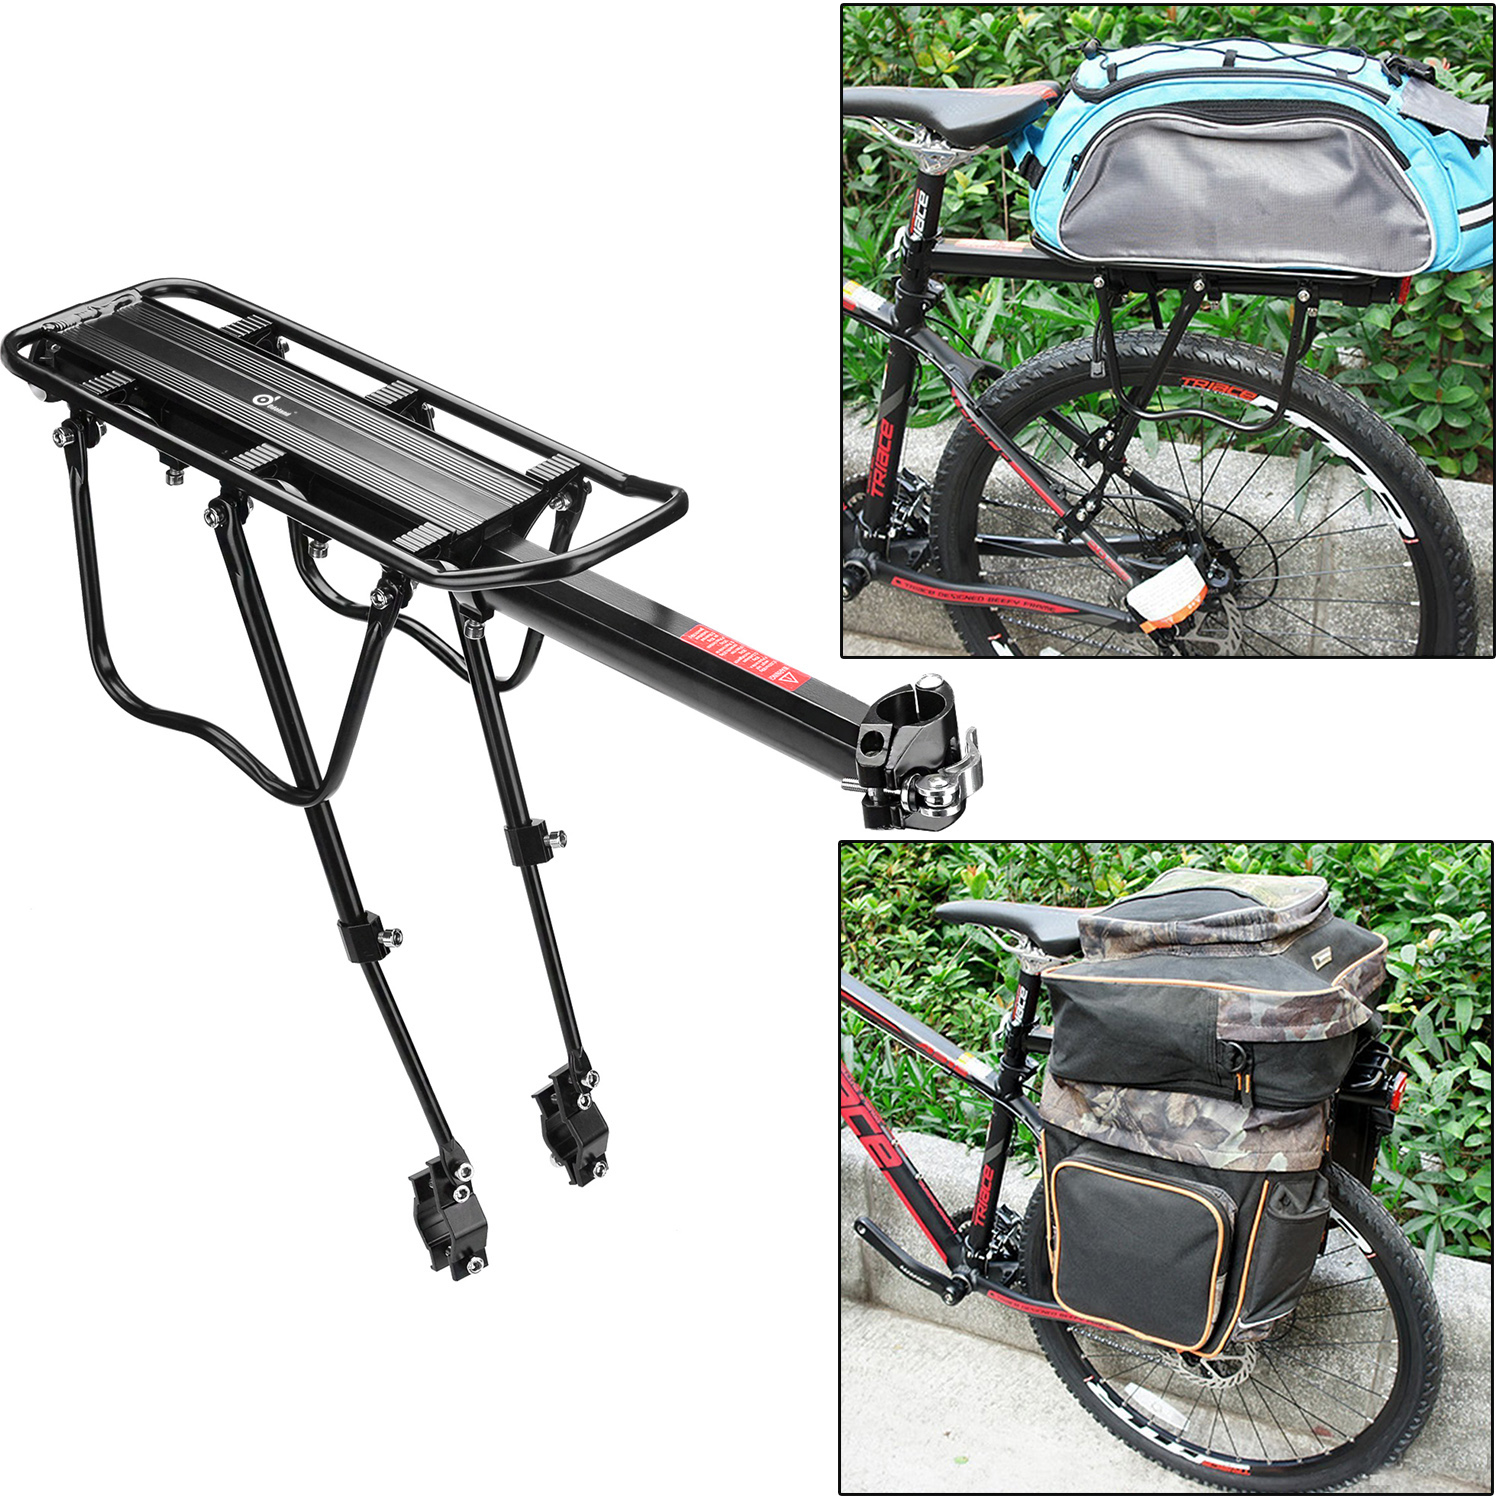 110 lbs Capacity Adjustable Rear Bike Rack Carrier Luggage Cargo Bicycle Accessories